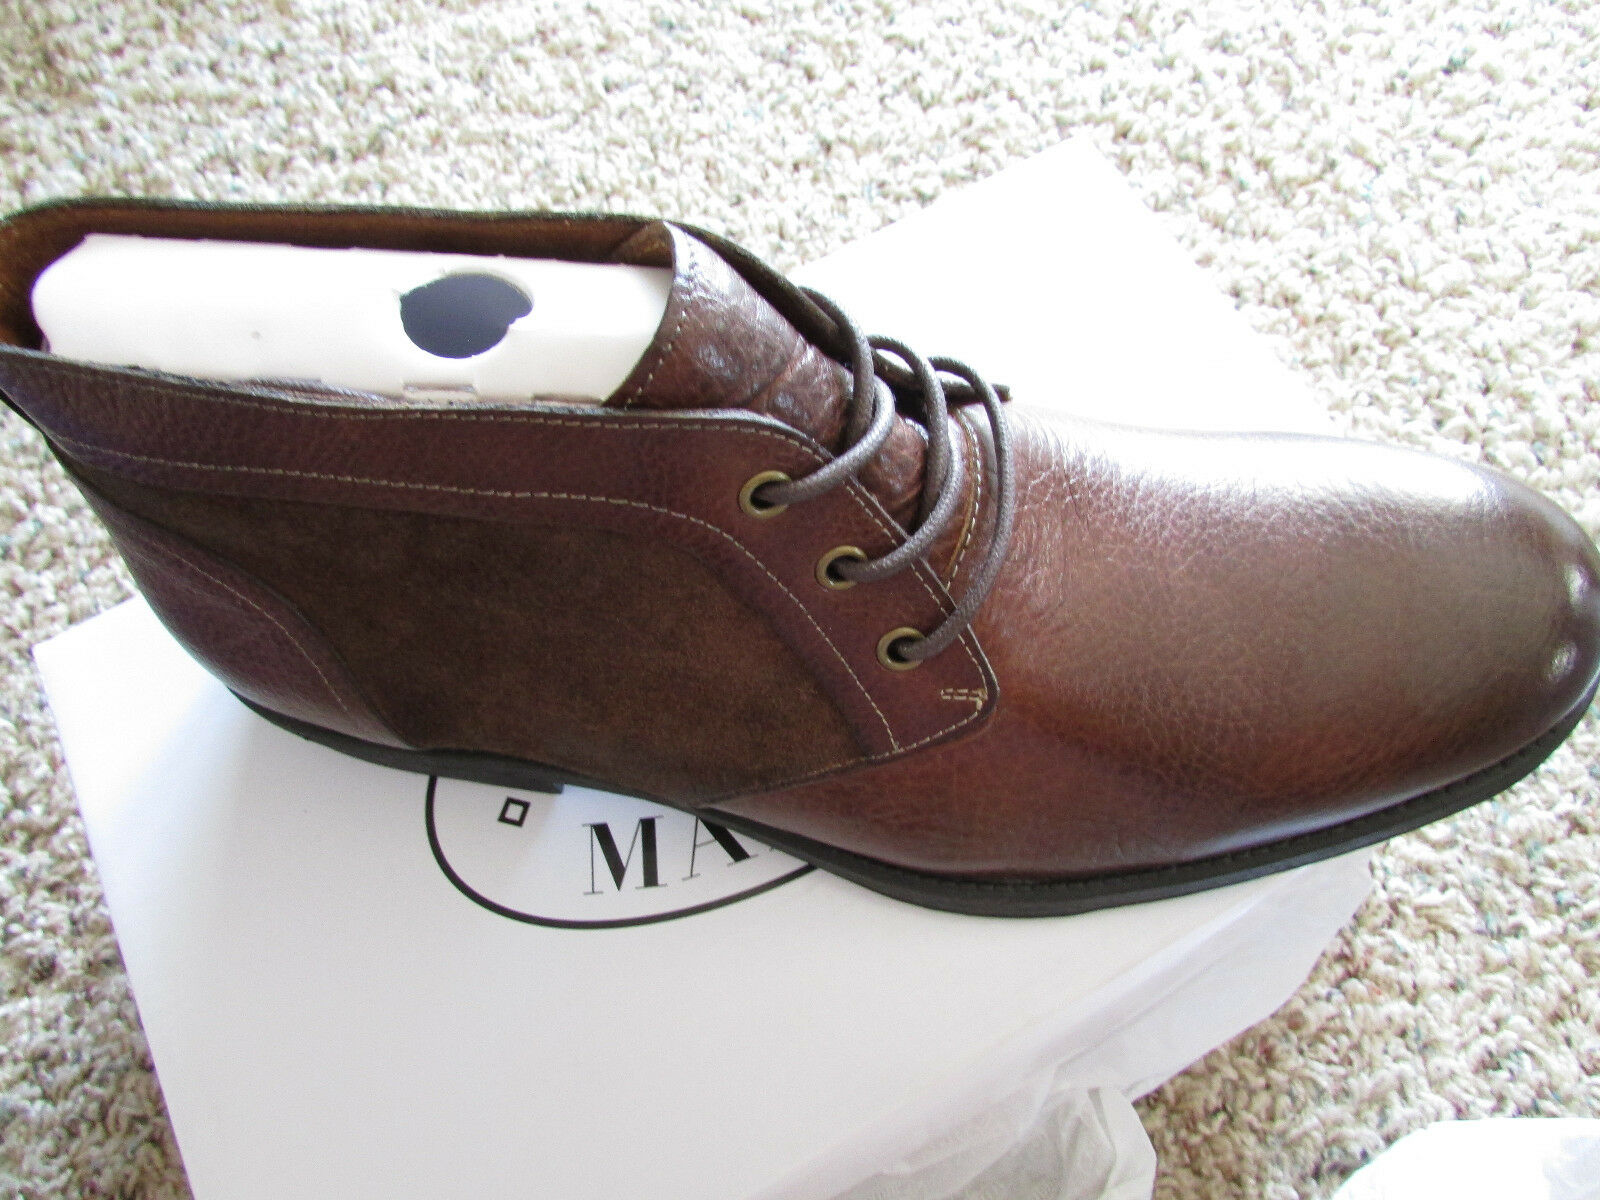 NEW STEVE MADDEN DERON CHUKKA ANKLE BOOTS Uomo 9.5 BROWN LEATHER LACE UP